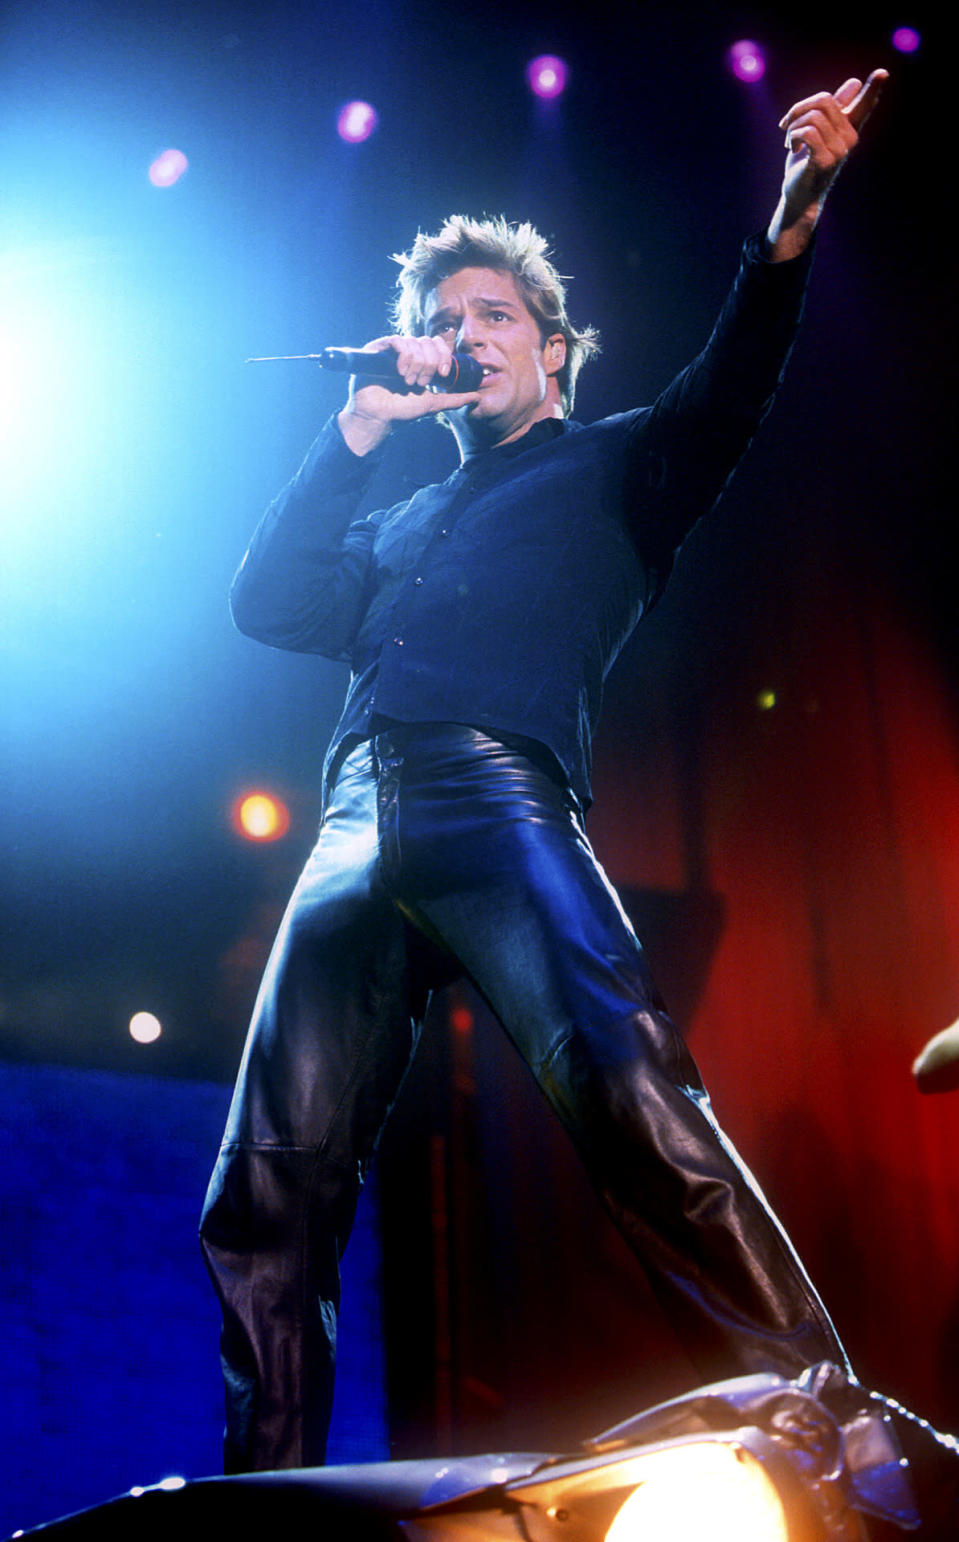 <p>Ricky Martin, on the other hand, is perfectly comfortable in leather, living his vida loca in them. <i>(Photo: Getty Images)</i></p>